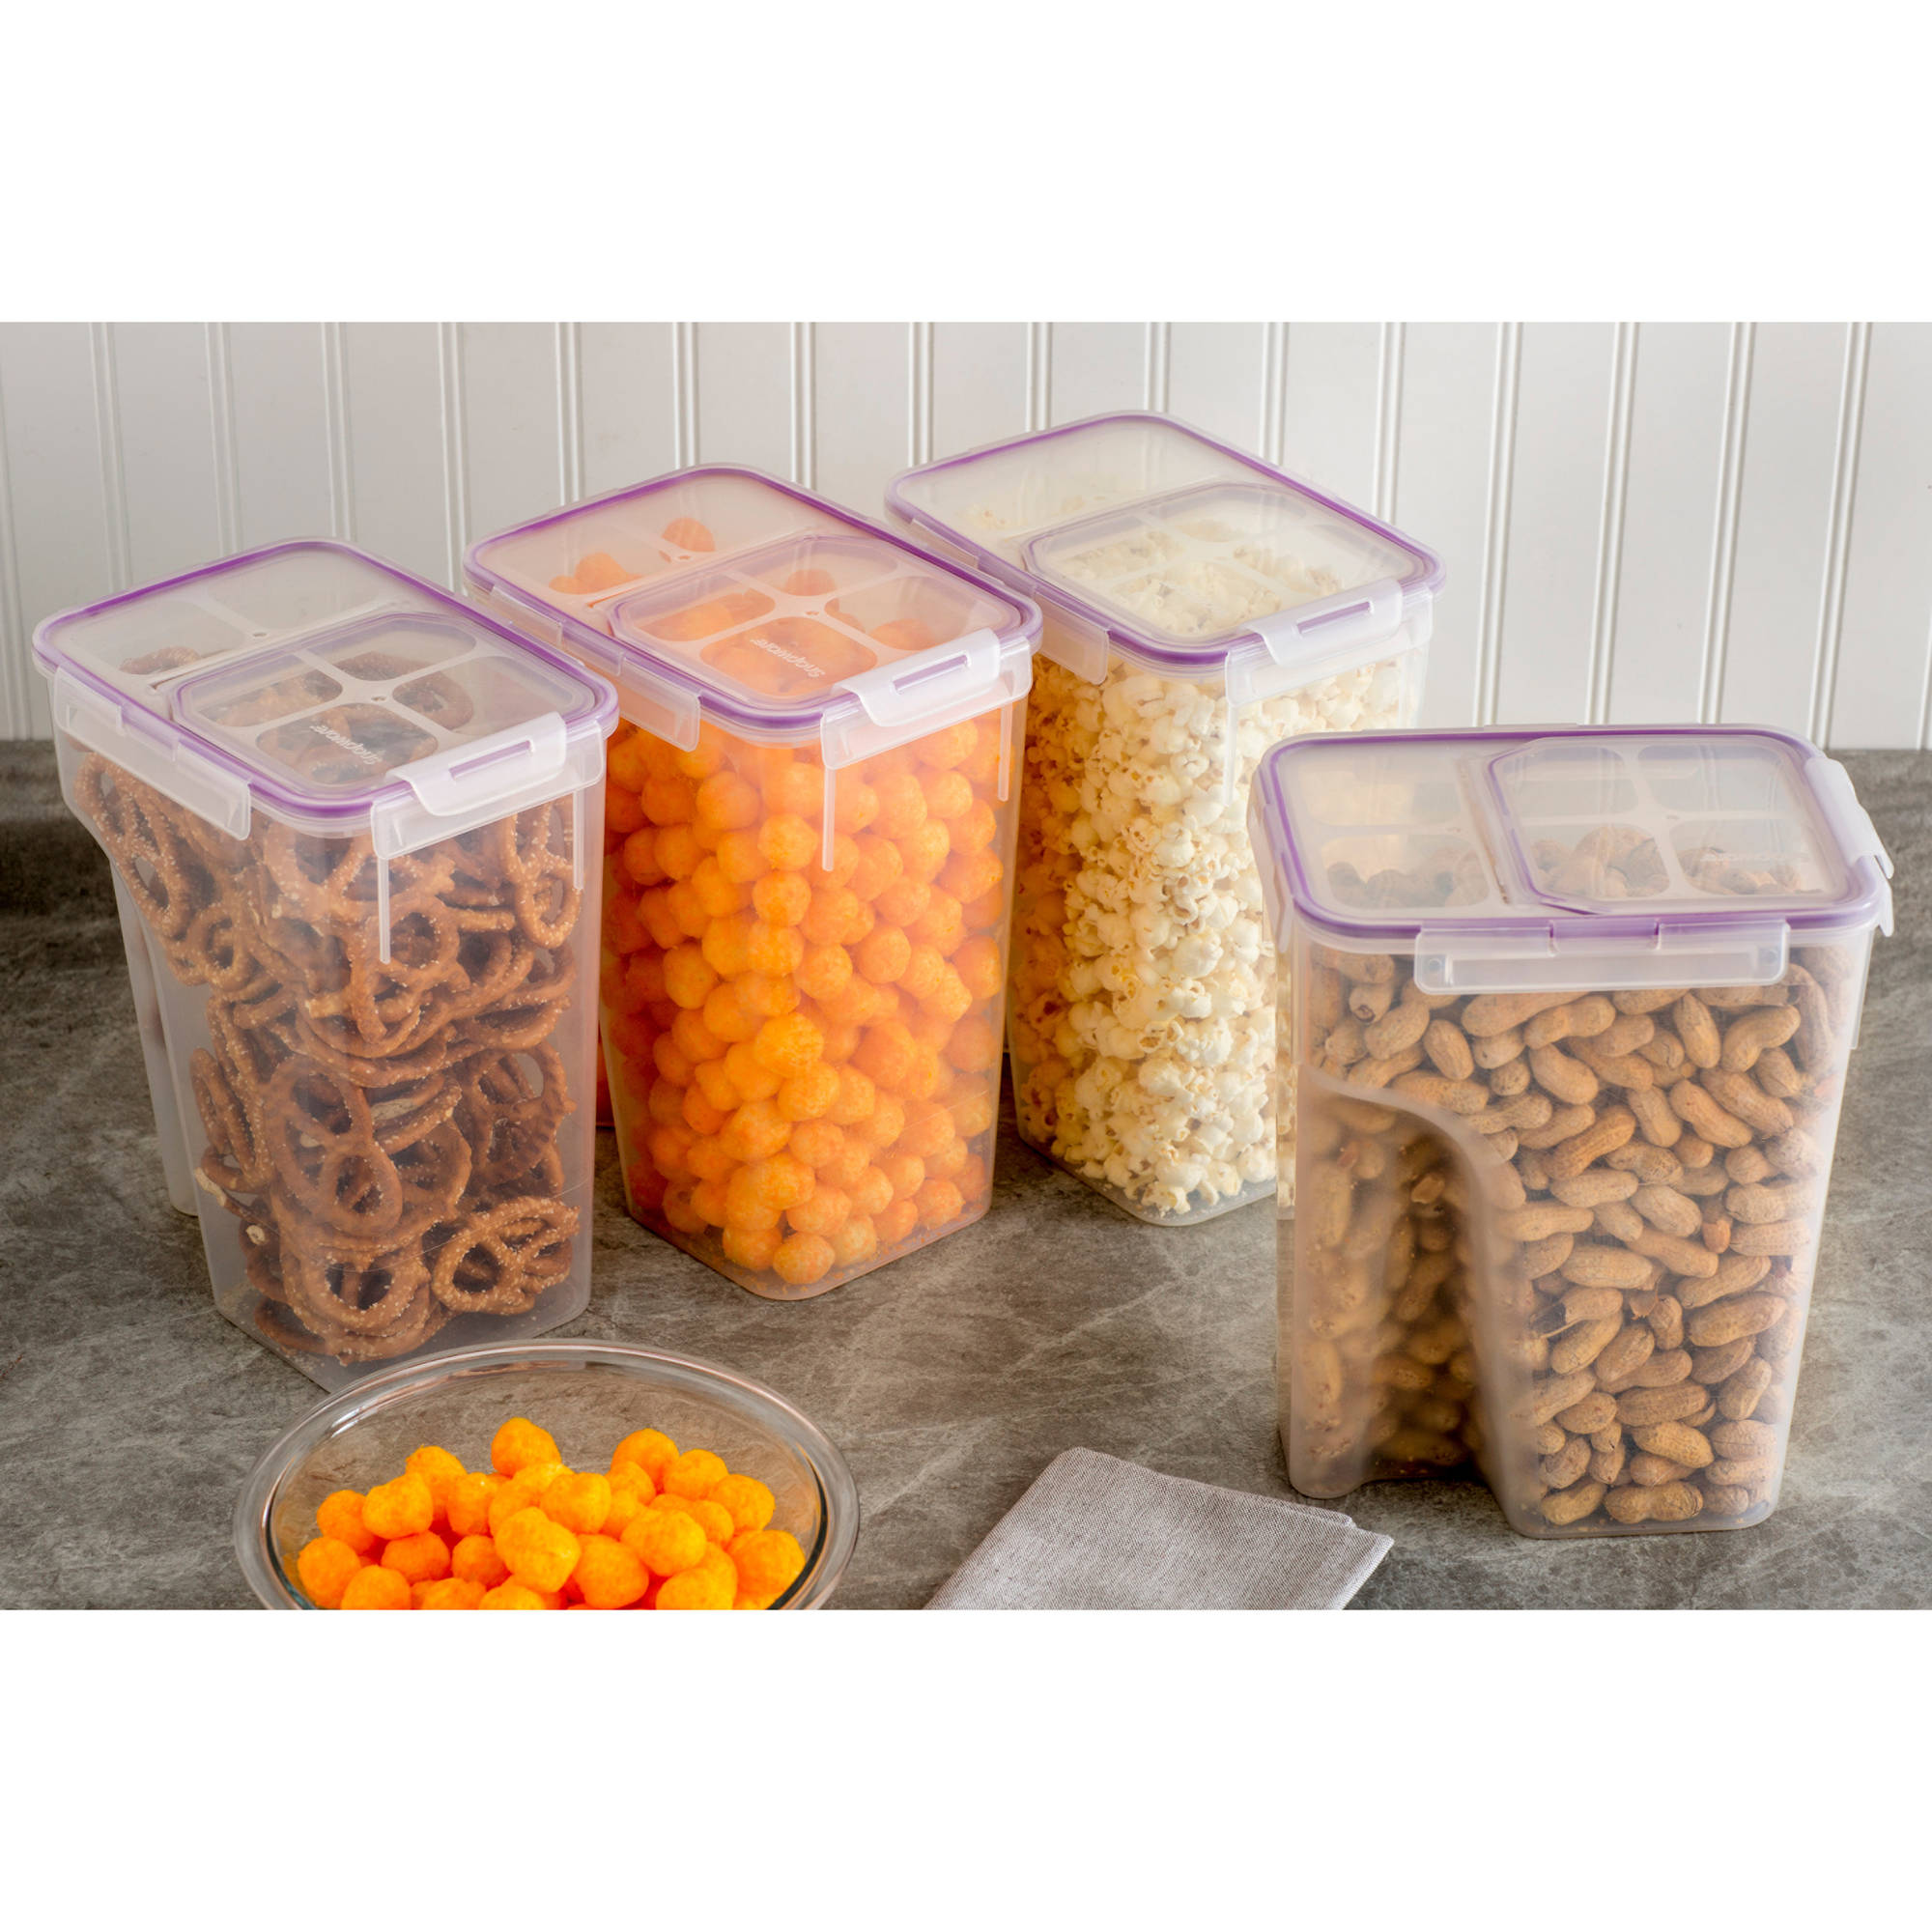 sc 1 st  Walmart & Snapware Airtight 24-Piece Food Storage Set - Walmart.com